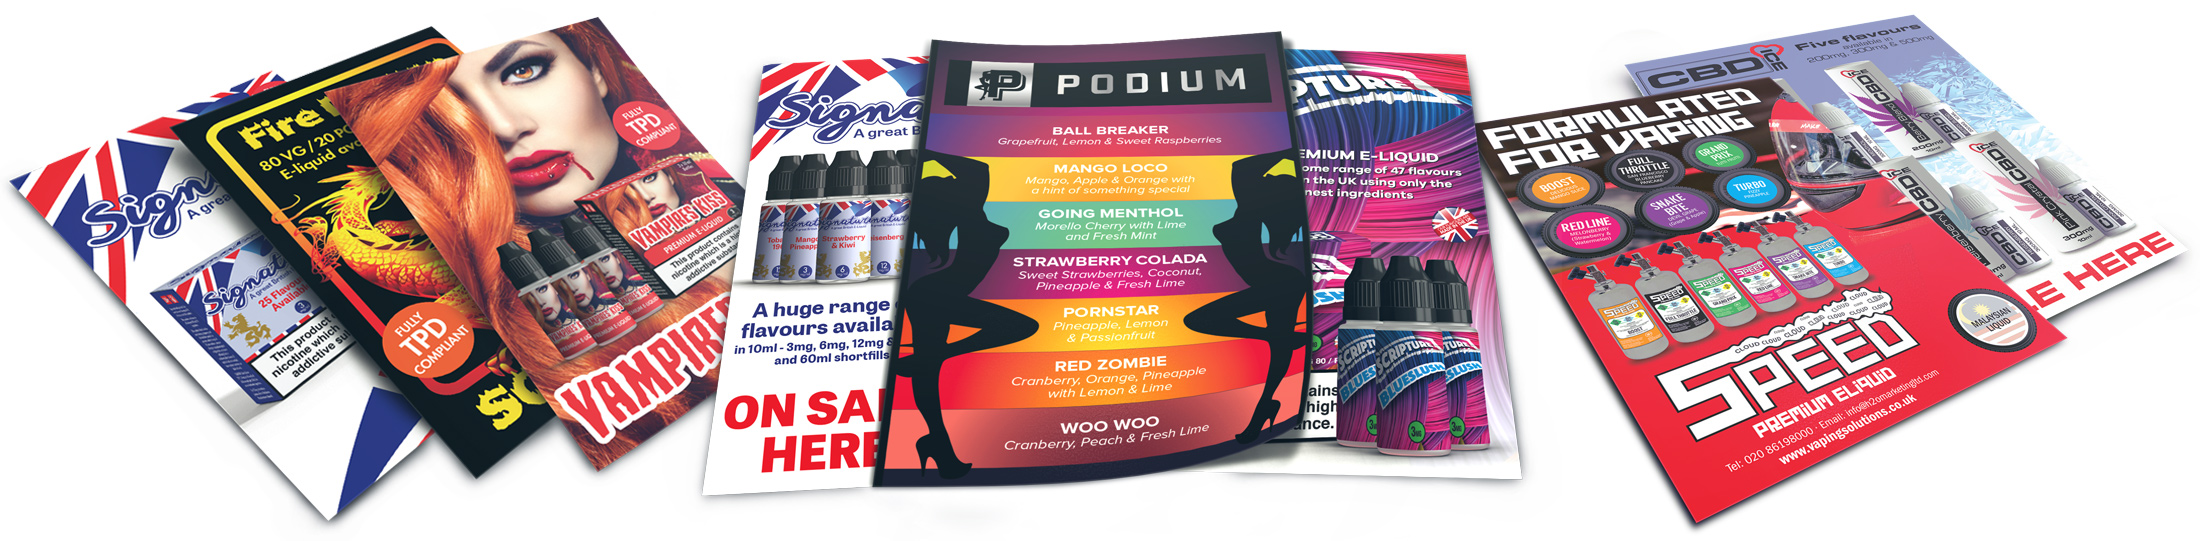 We produce E-liquid flyers, posters and menu cards